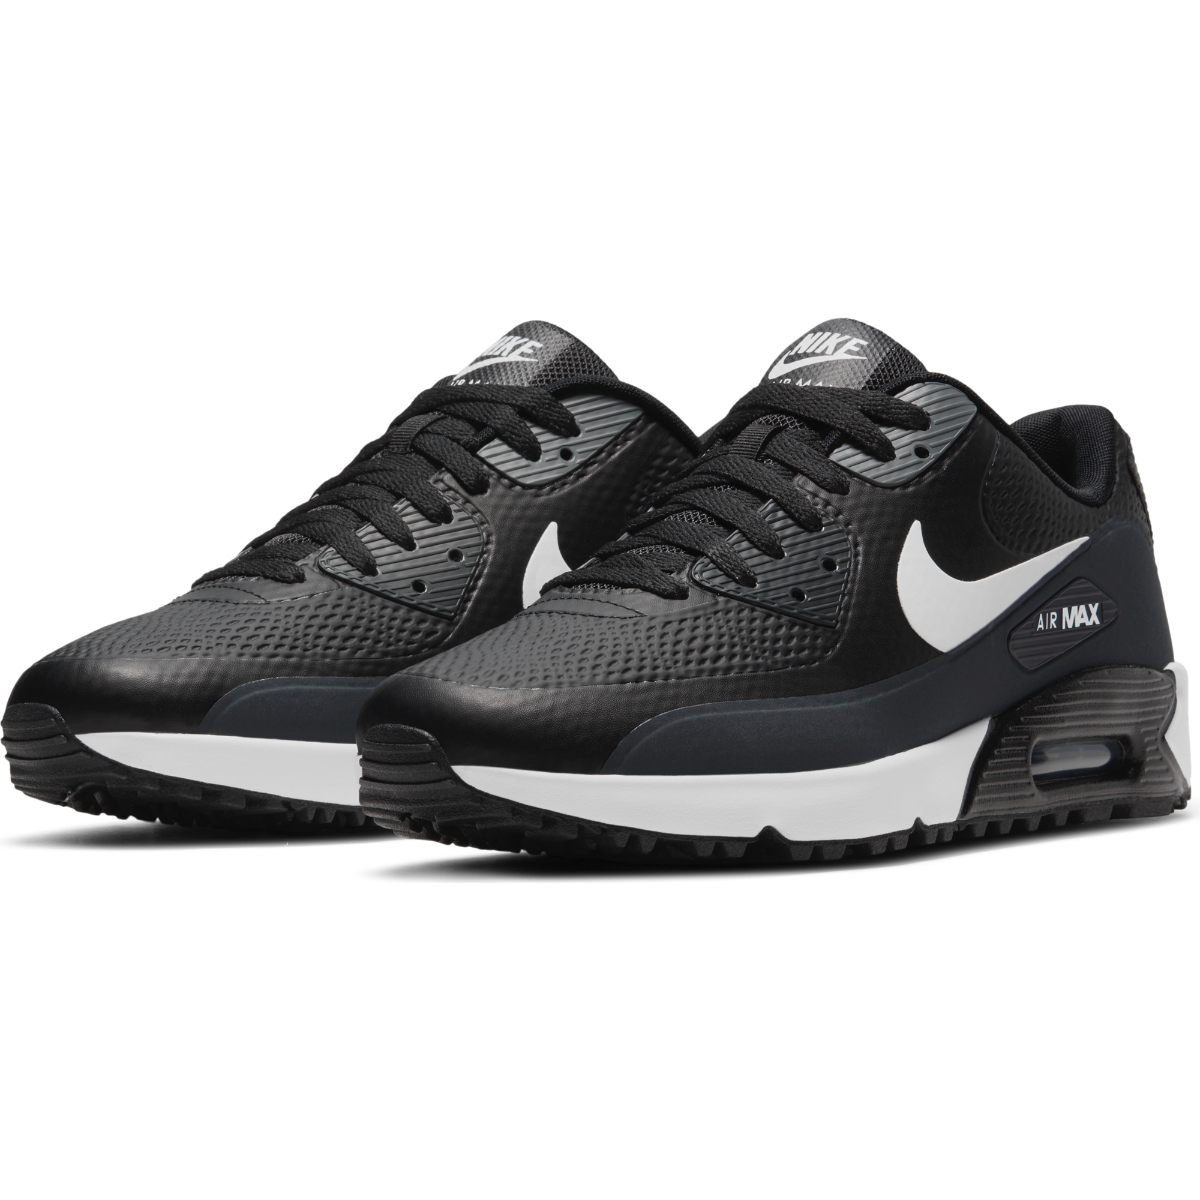 Trendy Golf: New Product Alert: Nike Air Max 90G | Milled